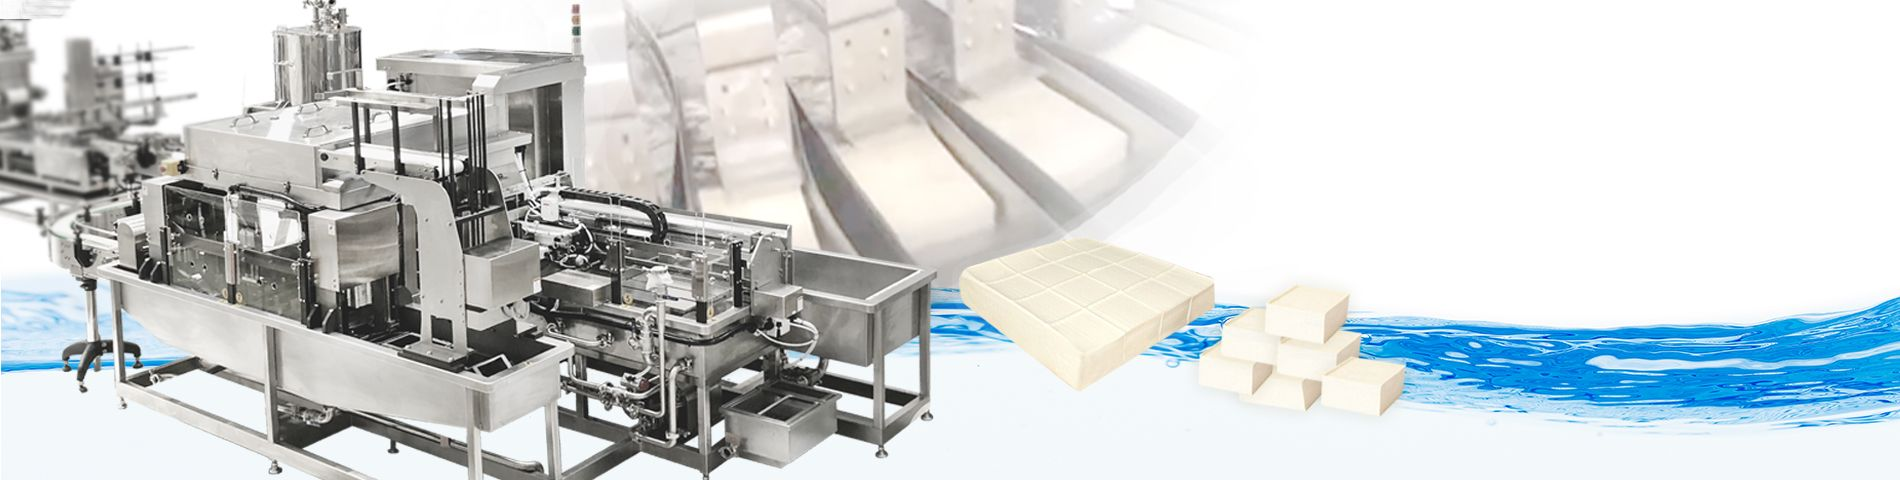 Tofu Cutting Machine  Auto. Cutting  Saving Costs, Cutting Time